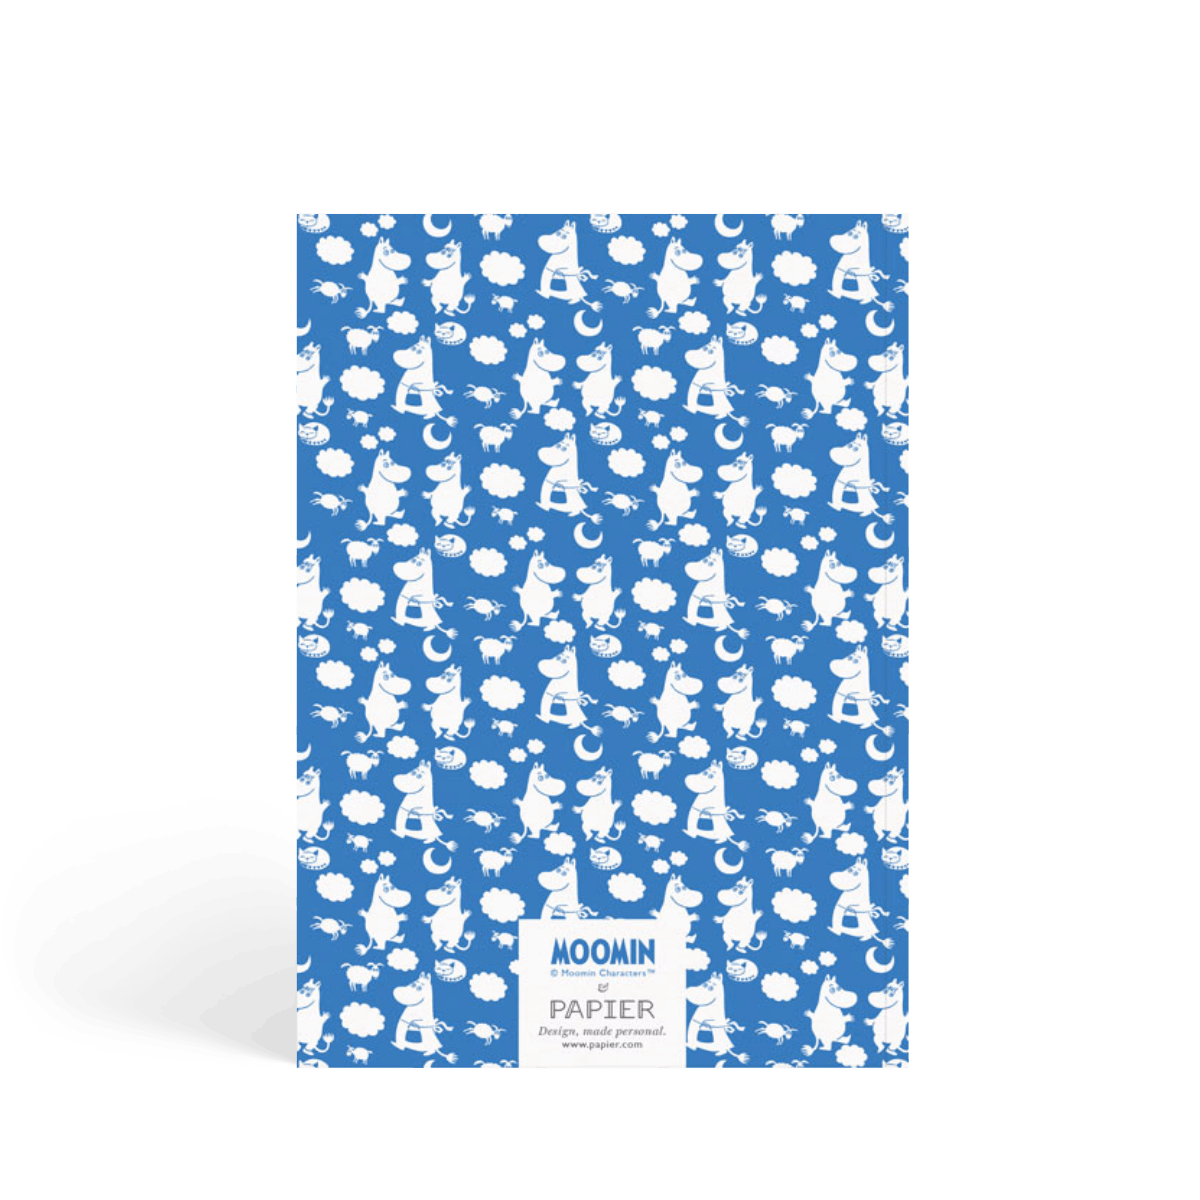 Https%3a%2f%2fwww.papier.com%2fproduct image%2f22886%2f5%2fblue moomins 5751 arriere 1495190436.png?ixlib=rb 1.1